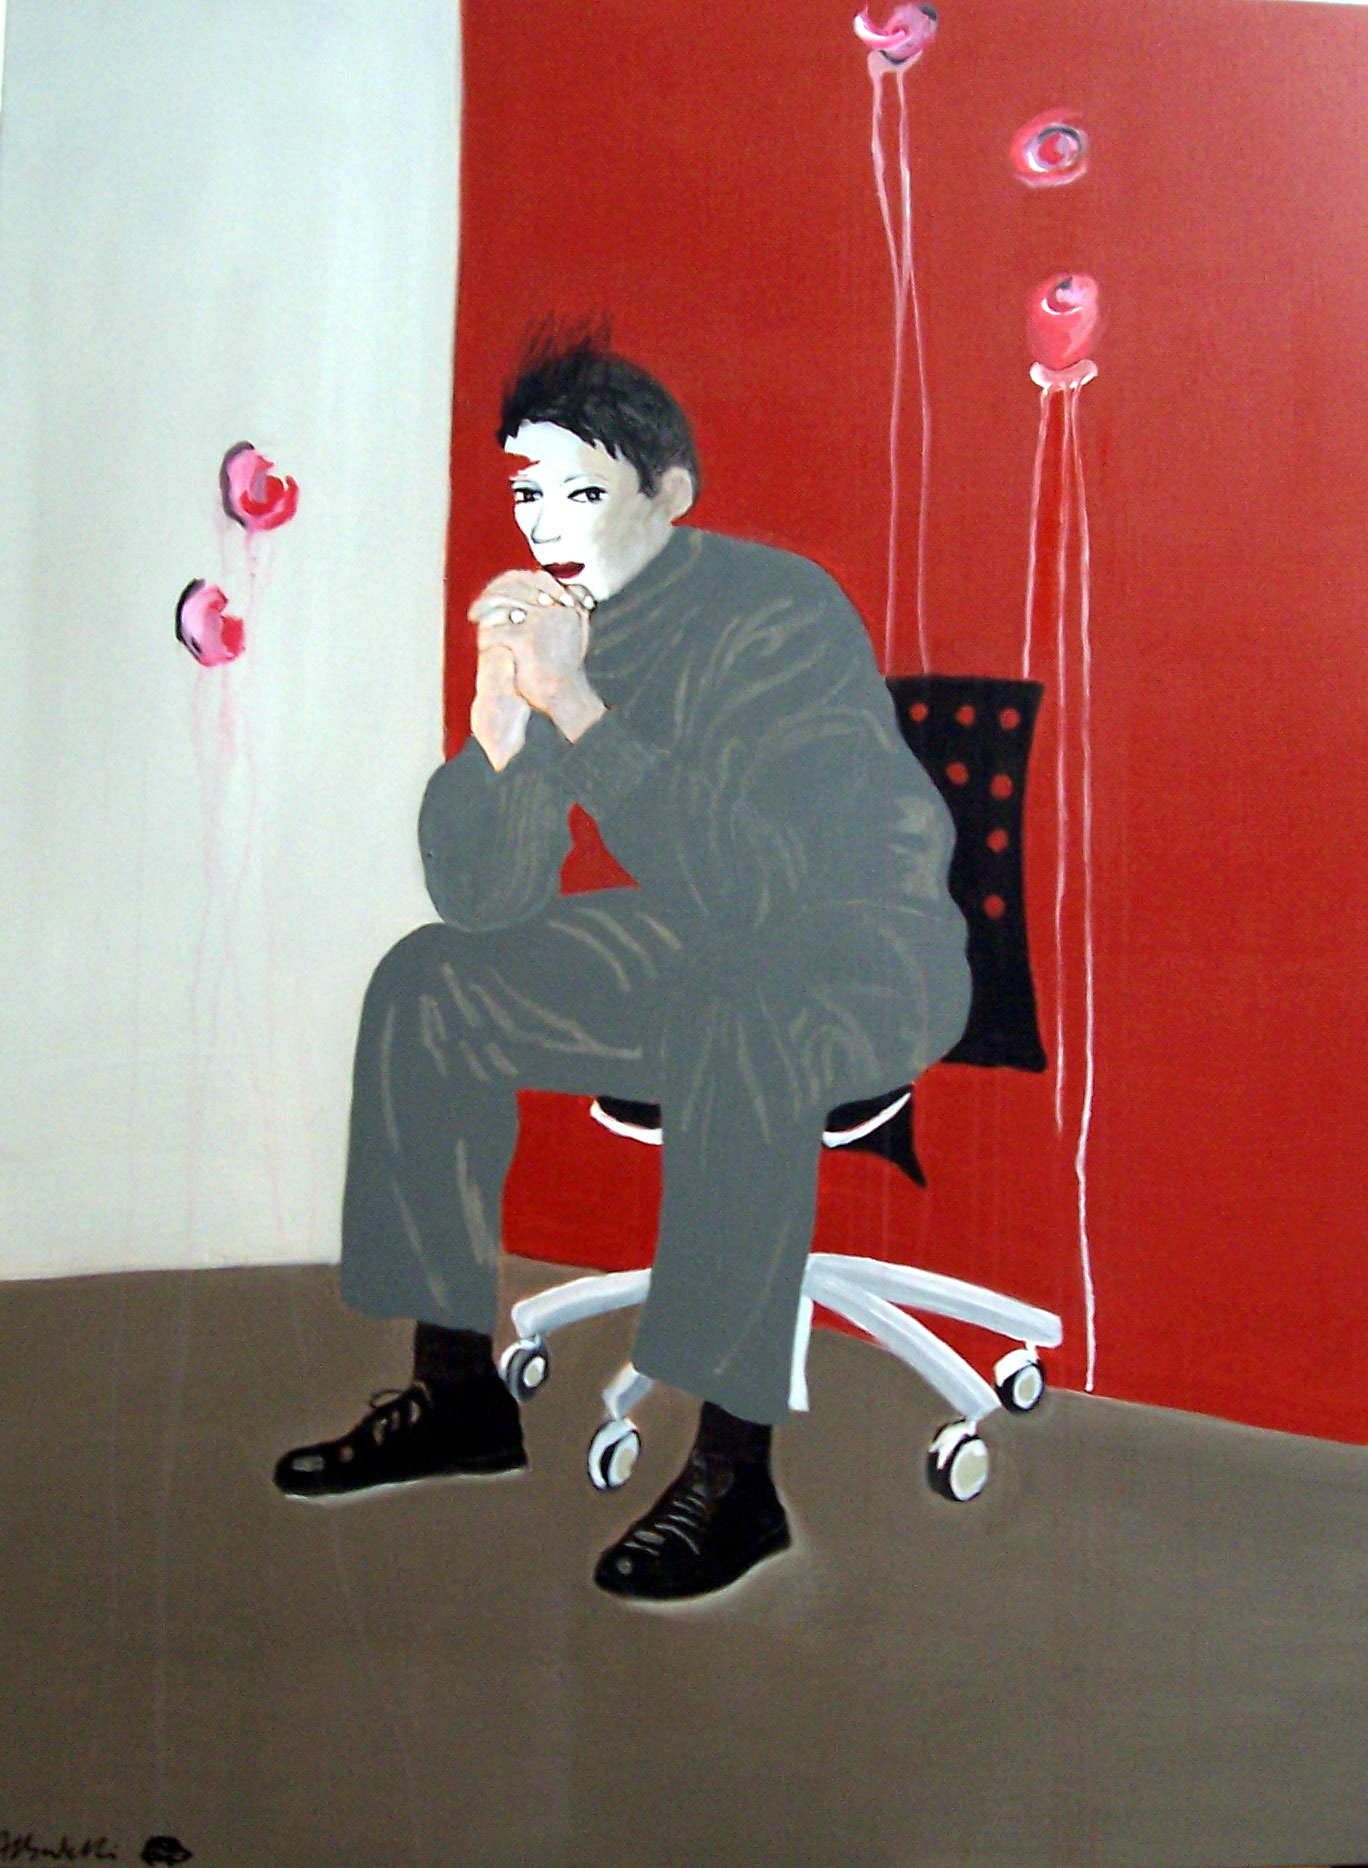 Dominique Albertelli courtesy galerie 1161